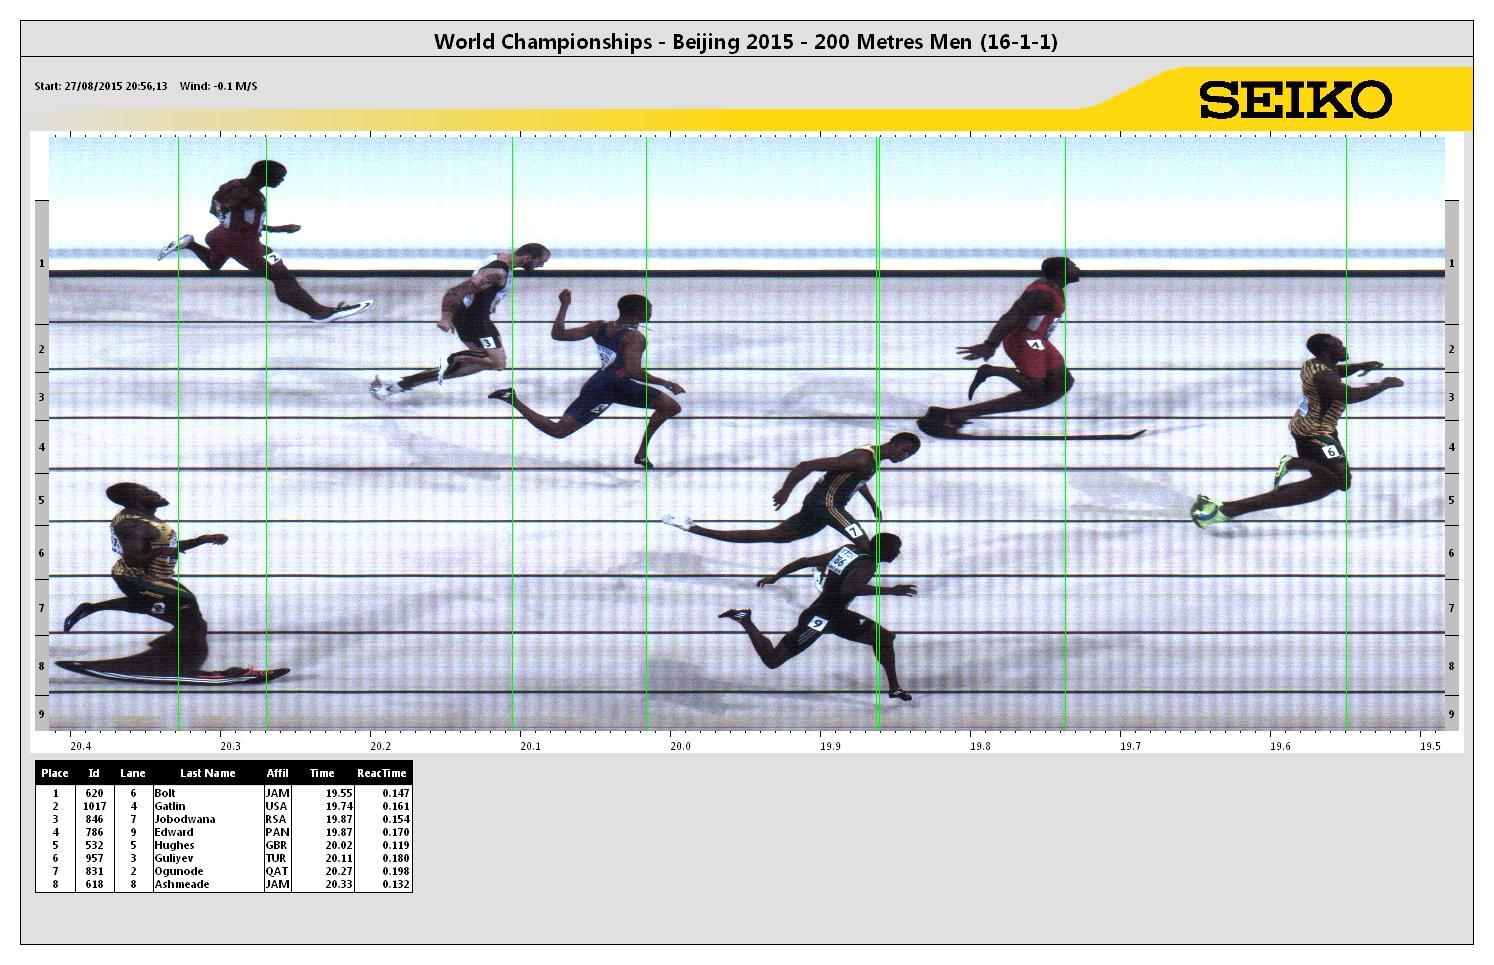 The photo finish of the men's 200, with Usain Bolt way ahead // photo courtesy Seiko